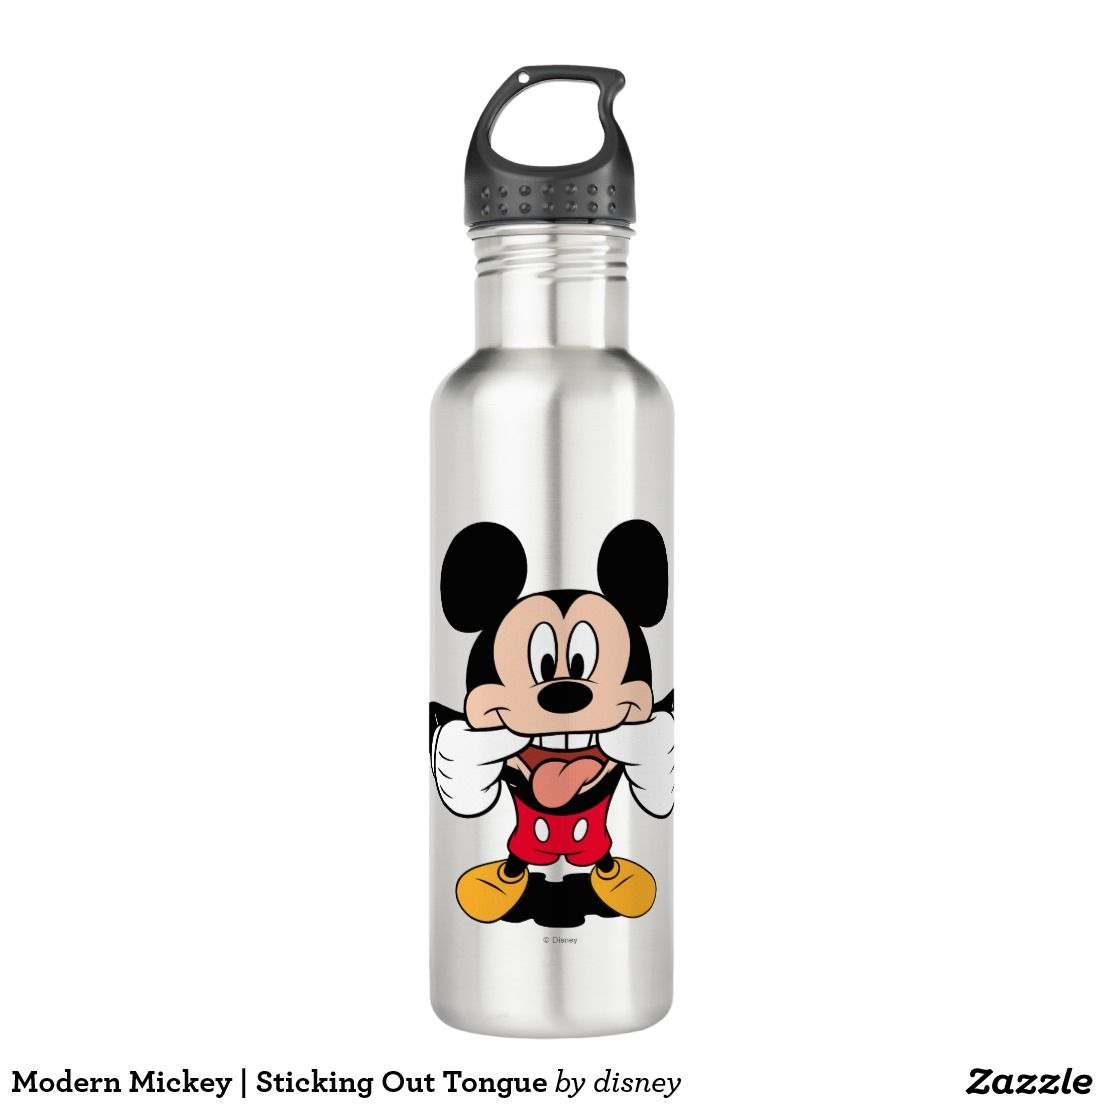 Modern Mickey   Sticking Out Tongue. Producto disponible en tienda Zazzle. Product available in Zazzle store. Regalos, Gifts. Link to product: http://www.zazzle.com/modern_mickey_sticking_out_tongue_stainless_steel_water_bottle-256096316366645172?CMPN=shareicon&lang=en&social=true&rf=238167879144476949 #bottle #botella #disney